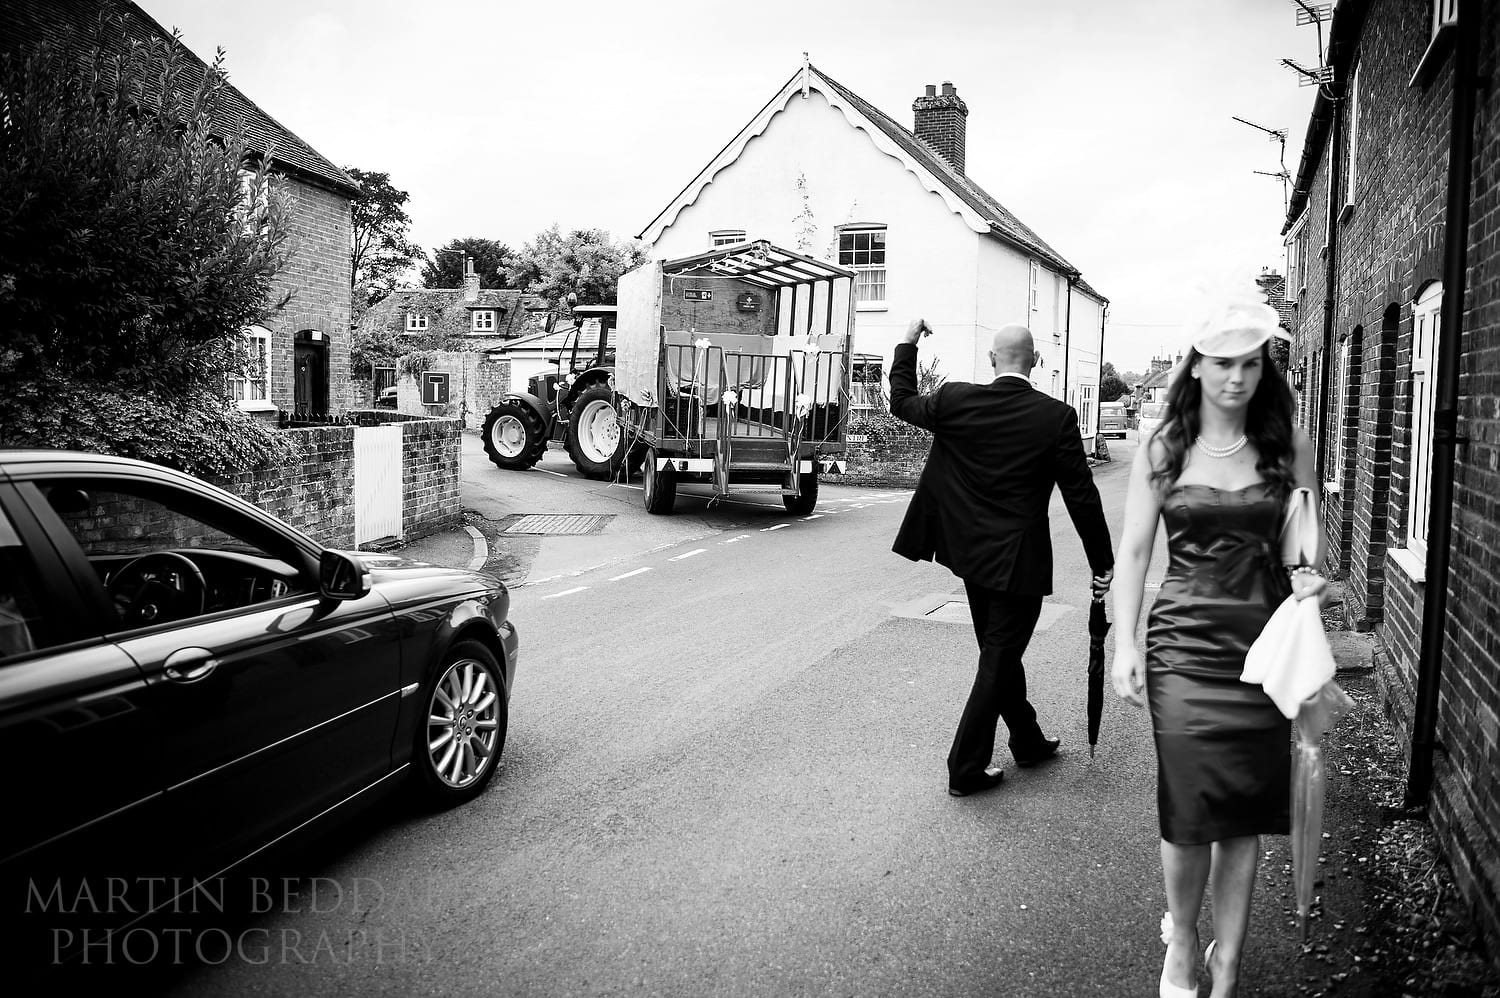 Wedding transport - tractor and trailer